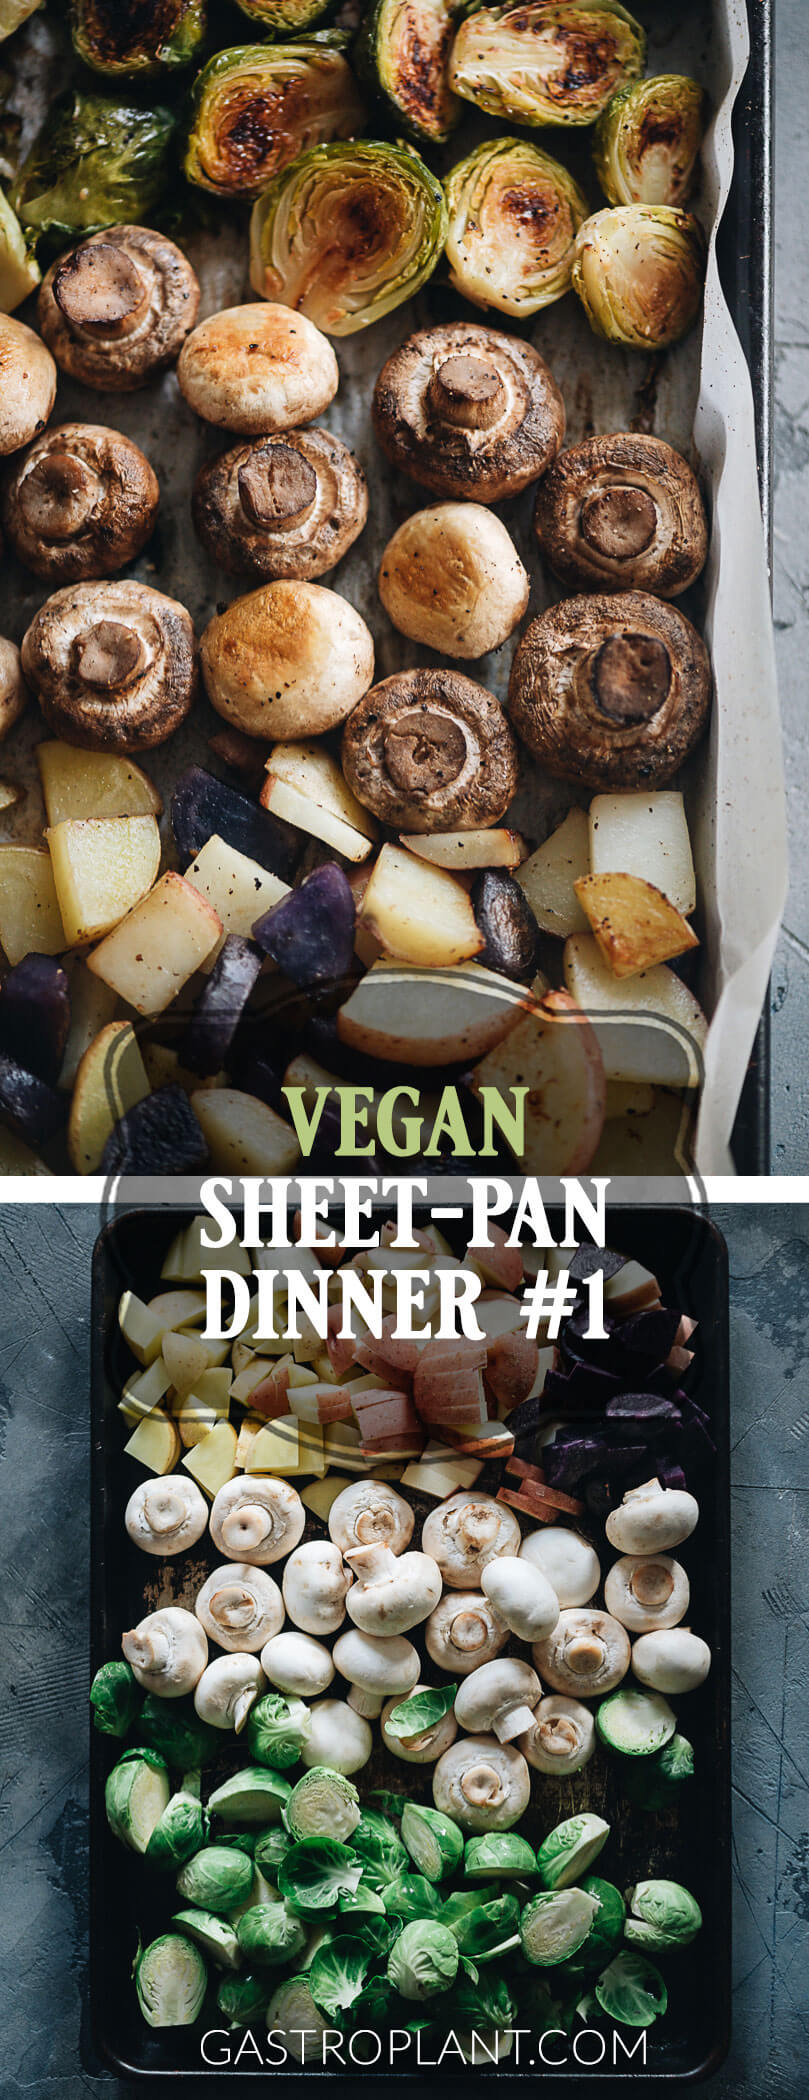 Easy Vegan Sheet Pan Dinner #1 | Brussels sprouts, mushrooms, and potatoes roasted perfectly together